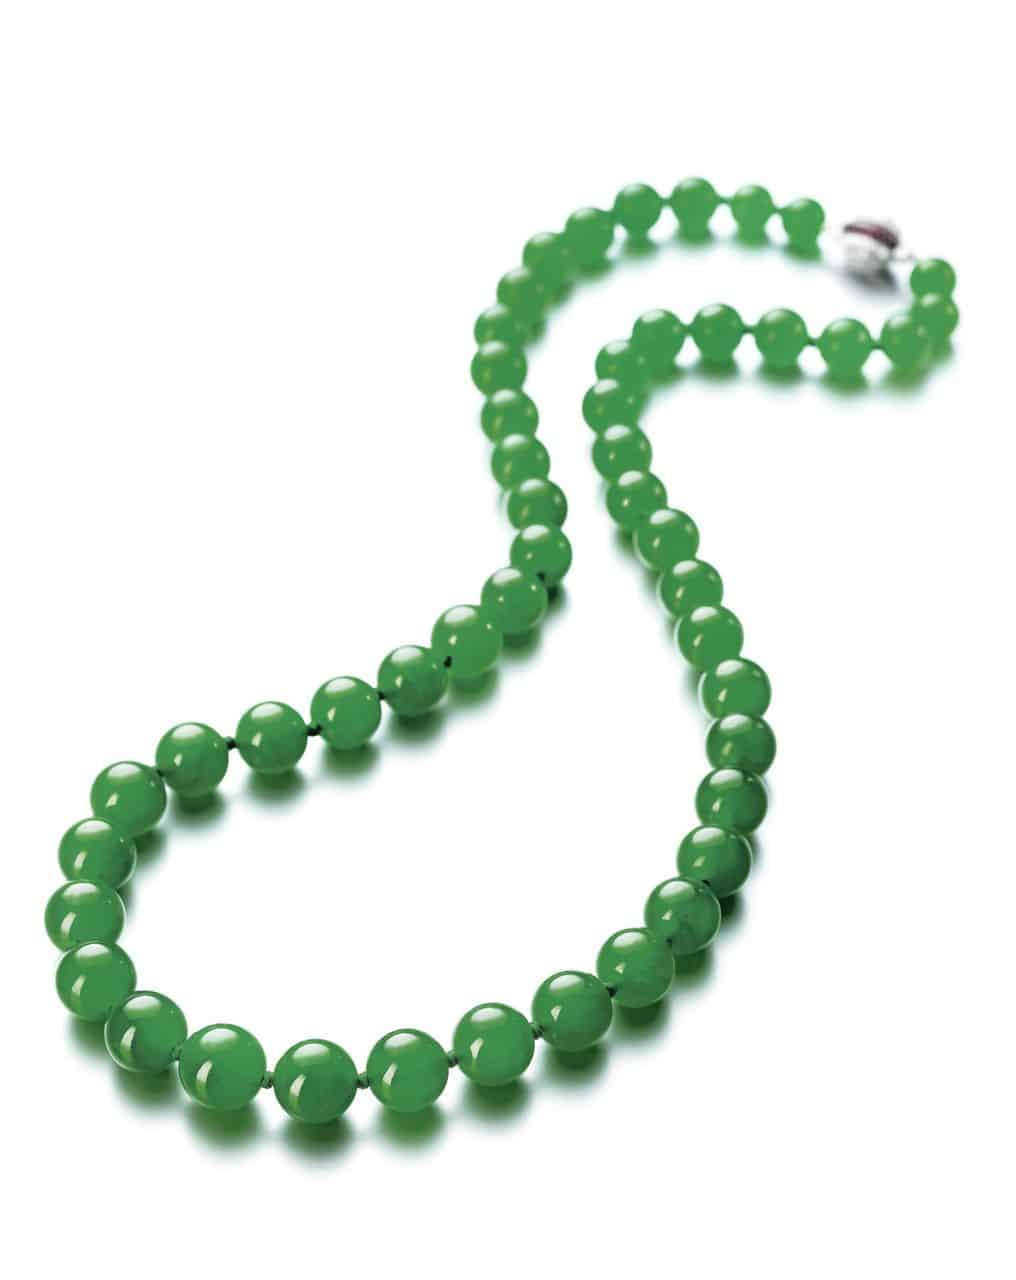 Lot 1700 - Another View of the Important Jadeite Bead, Diamond and Ruby Necklace